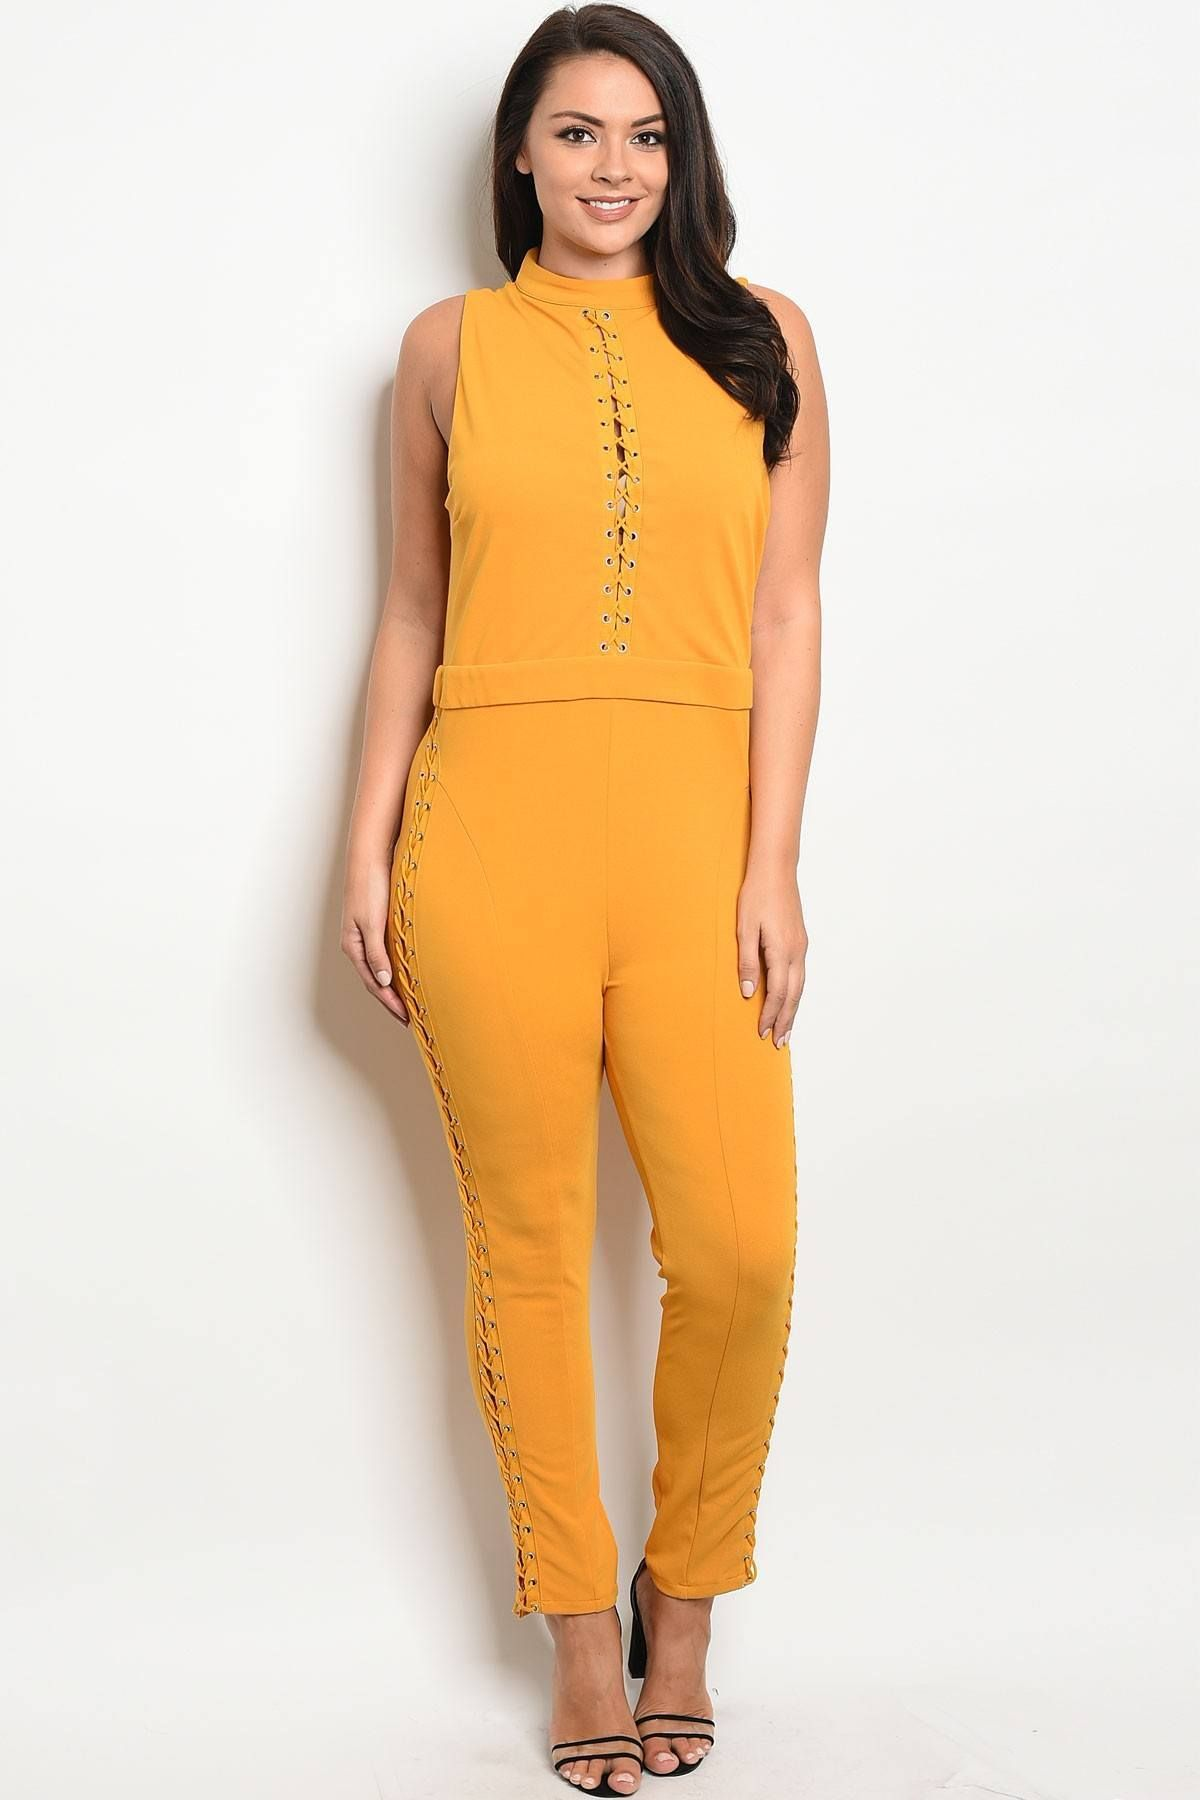 2301415ec73 Ladies fashion sleeveless fitted jumpsuit with a mock neckline and lace up  details Imported 1XL.2XL.3XL95% Polyester 5% Spandex Mustard WFS Ladies  fashion ...